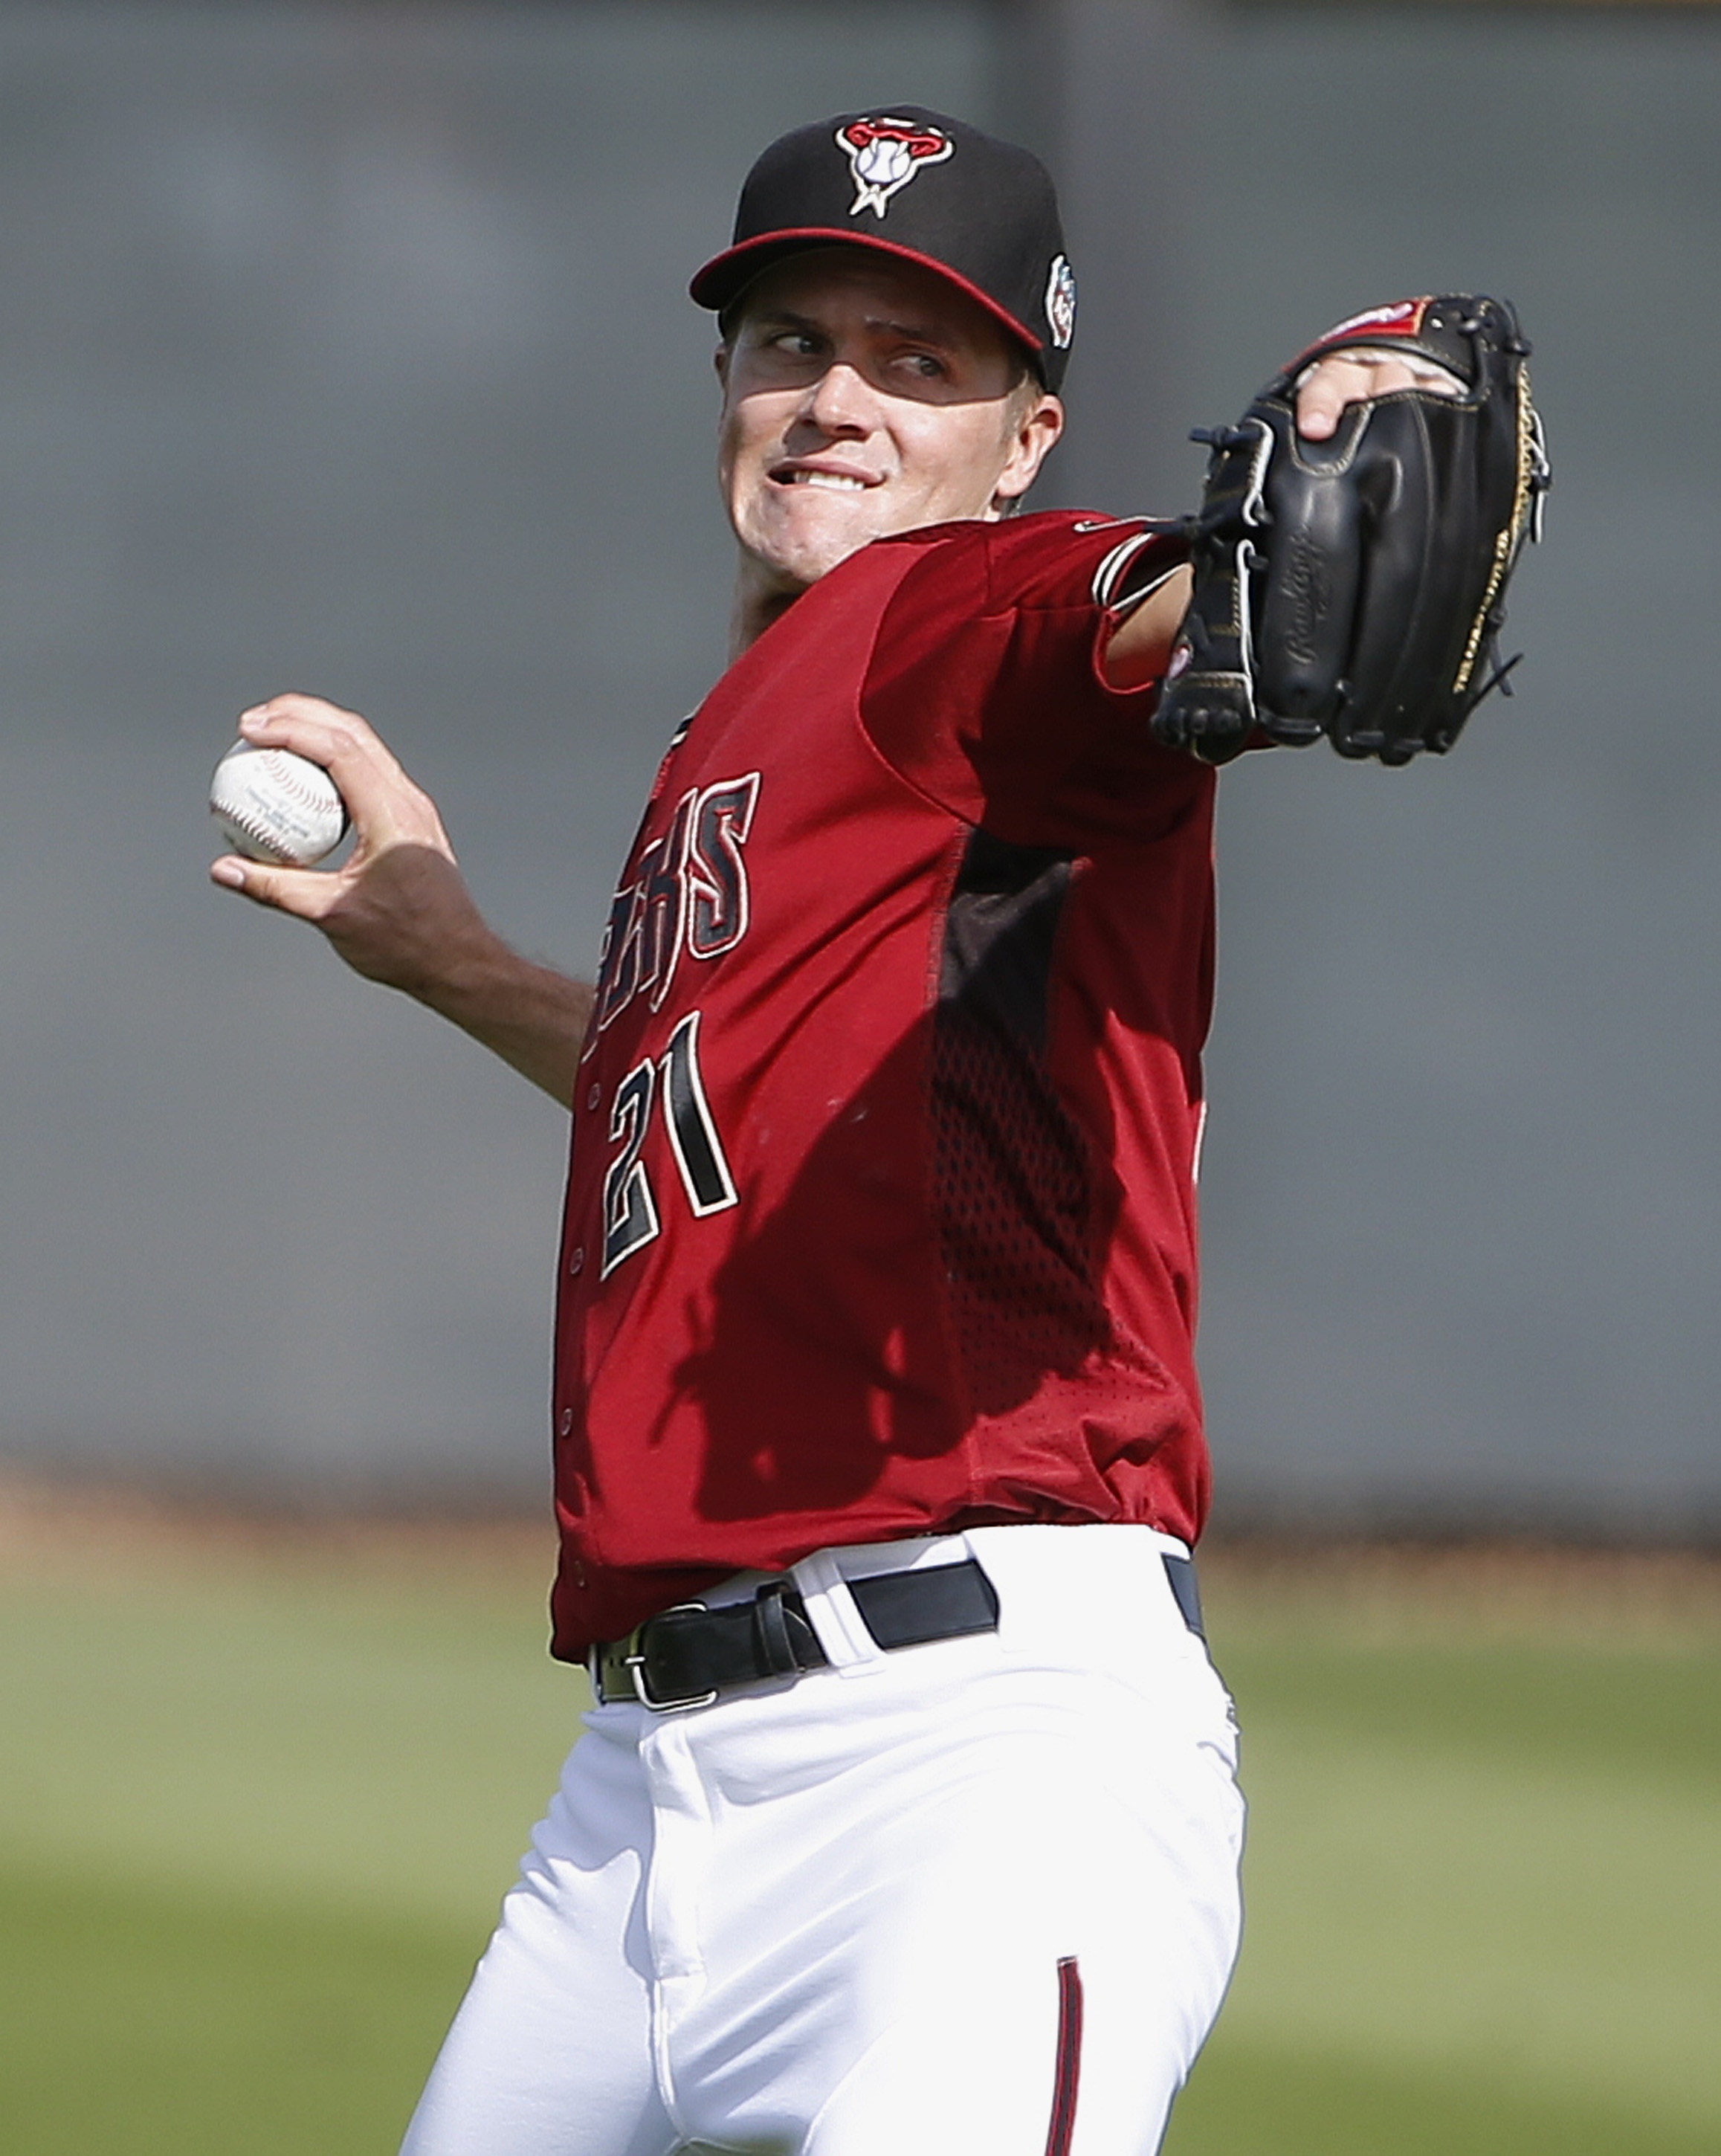 FILE - In this Feb. 29, 2016, file photo, Arizona Diamondbacks' Zack Greinke warms up during a spring training baseball workout in Scottsdale, Ariz. The Diamondbacks face Grenike's former team, the Los Angeles Dodgers, in a series starting July 15. (AP Ph